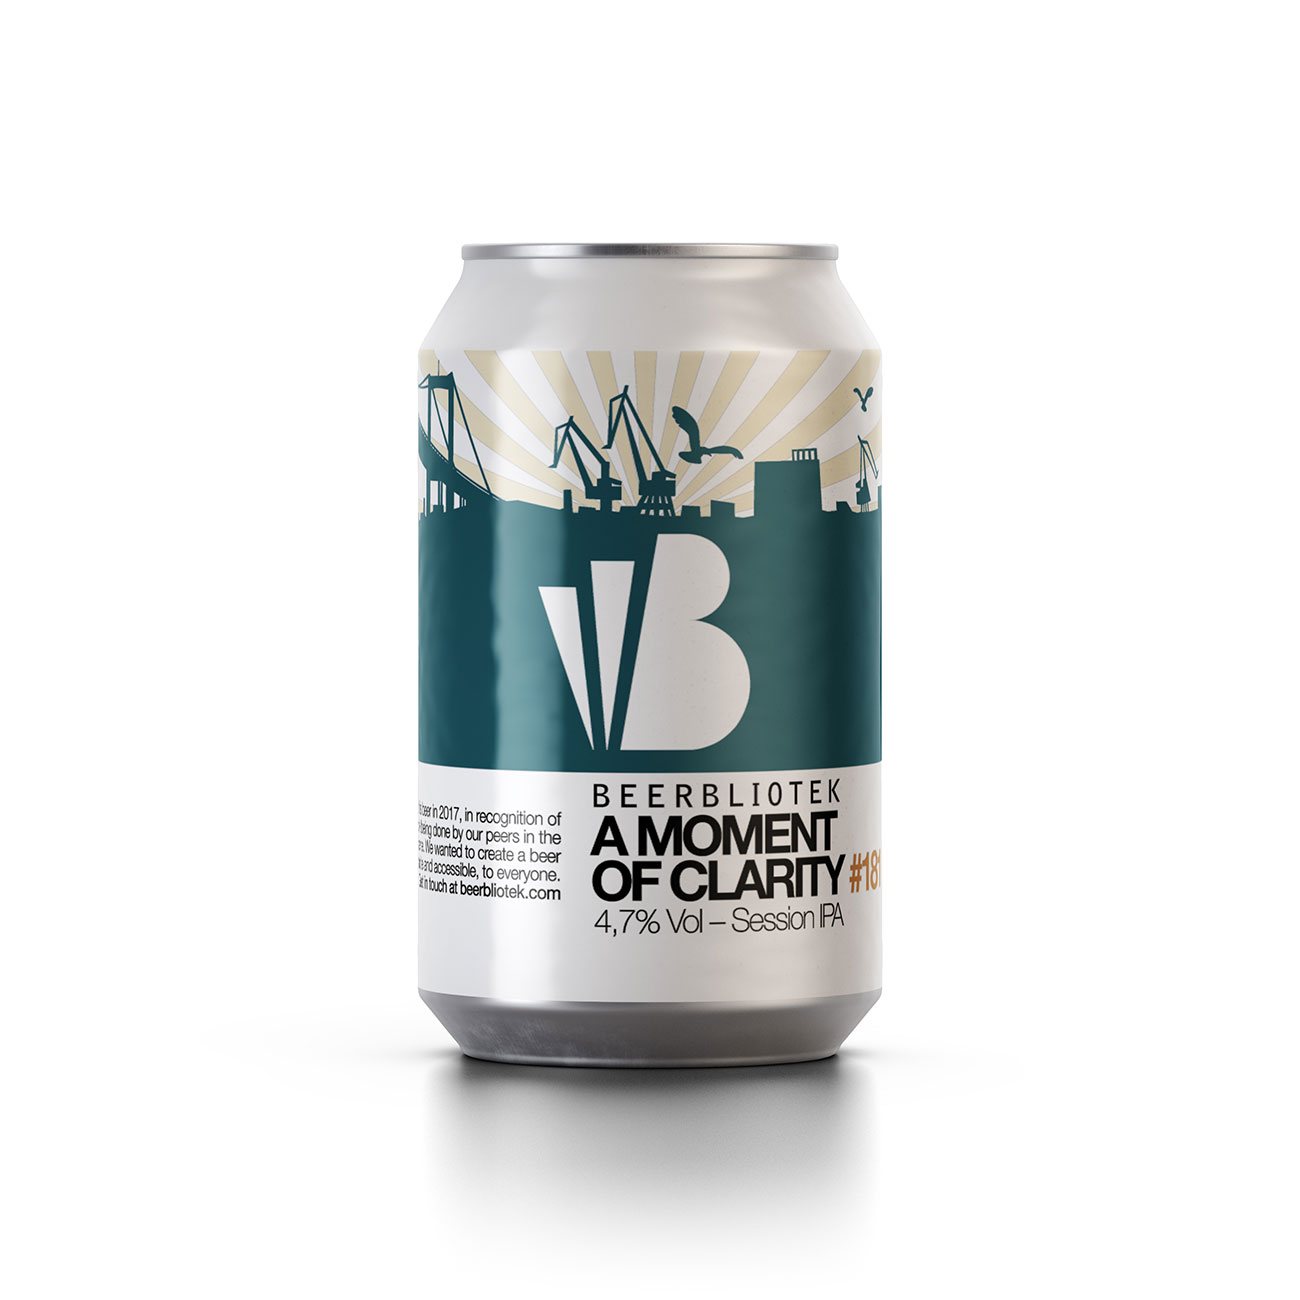 A can packshot of A Moment of Clarity, the Session IPA brewed by Beerbliotek Craft Brewery in Sweden.